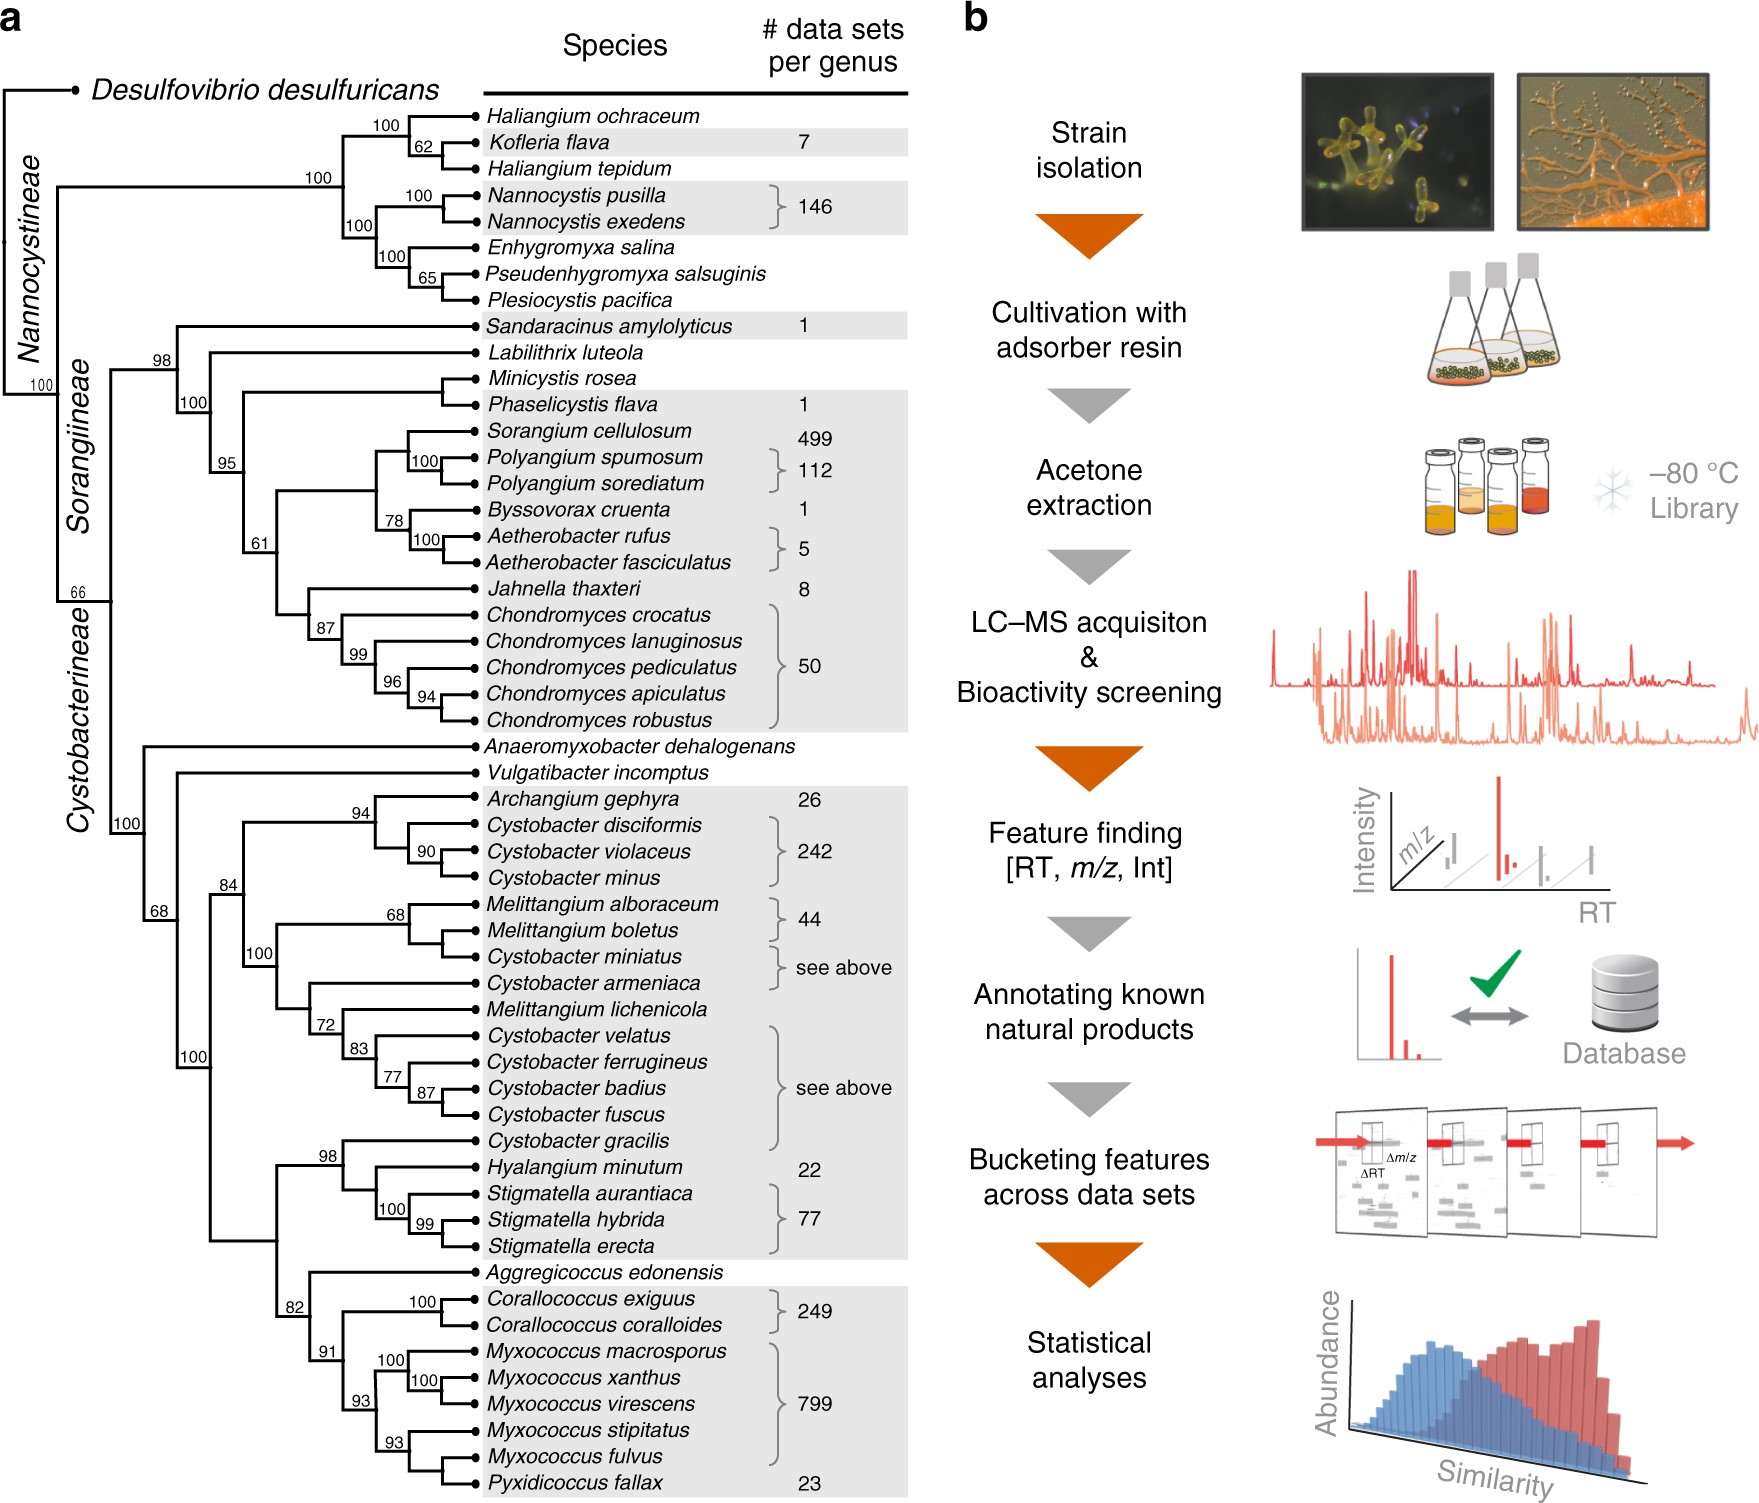 Correlating Chemical Diversity With Taxonomic Distance For Discovery How To Draw Up A Hierarchical Tree Diagram Of Natural Products In Myxobacteria Nature Communications